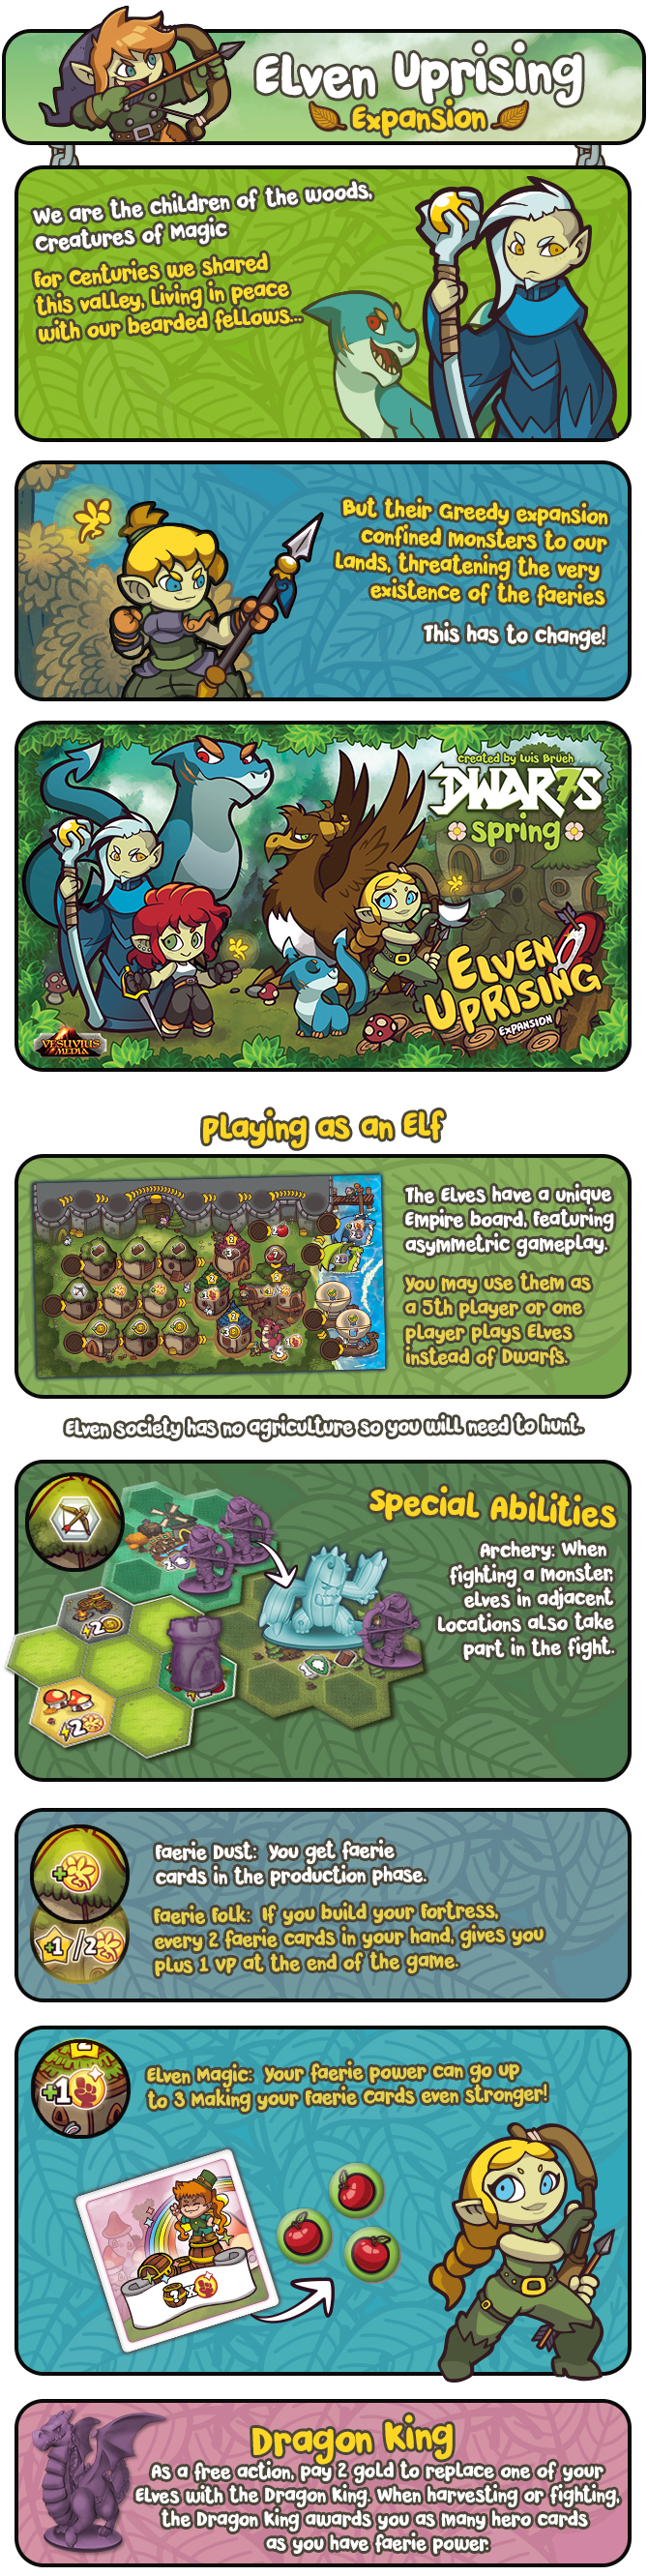 Elven Uprising Game Play